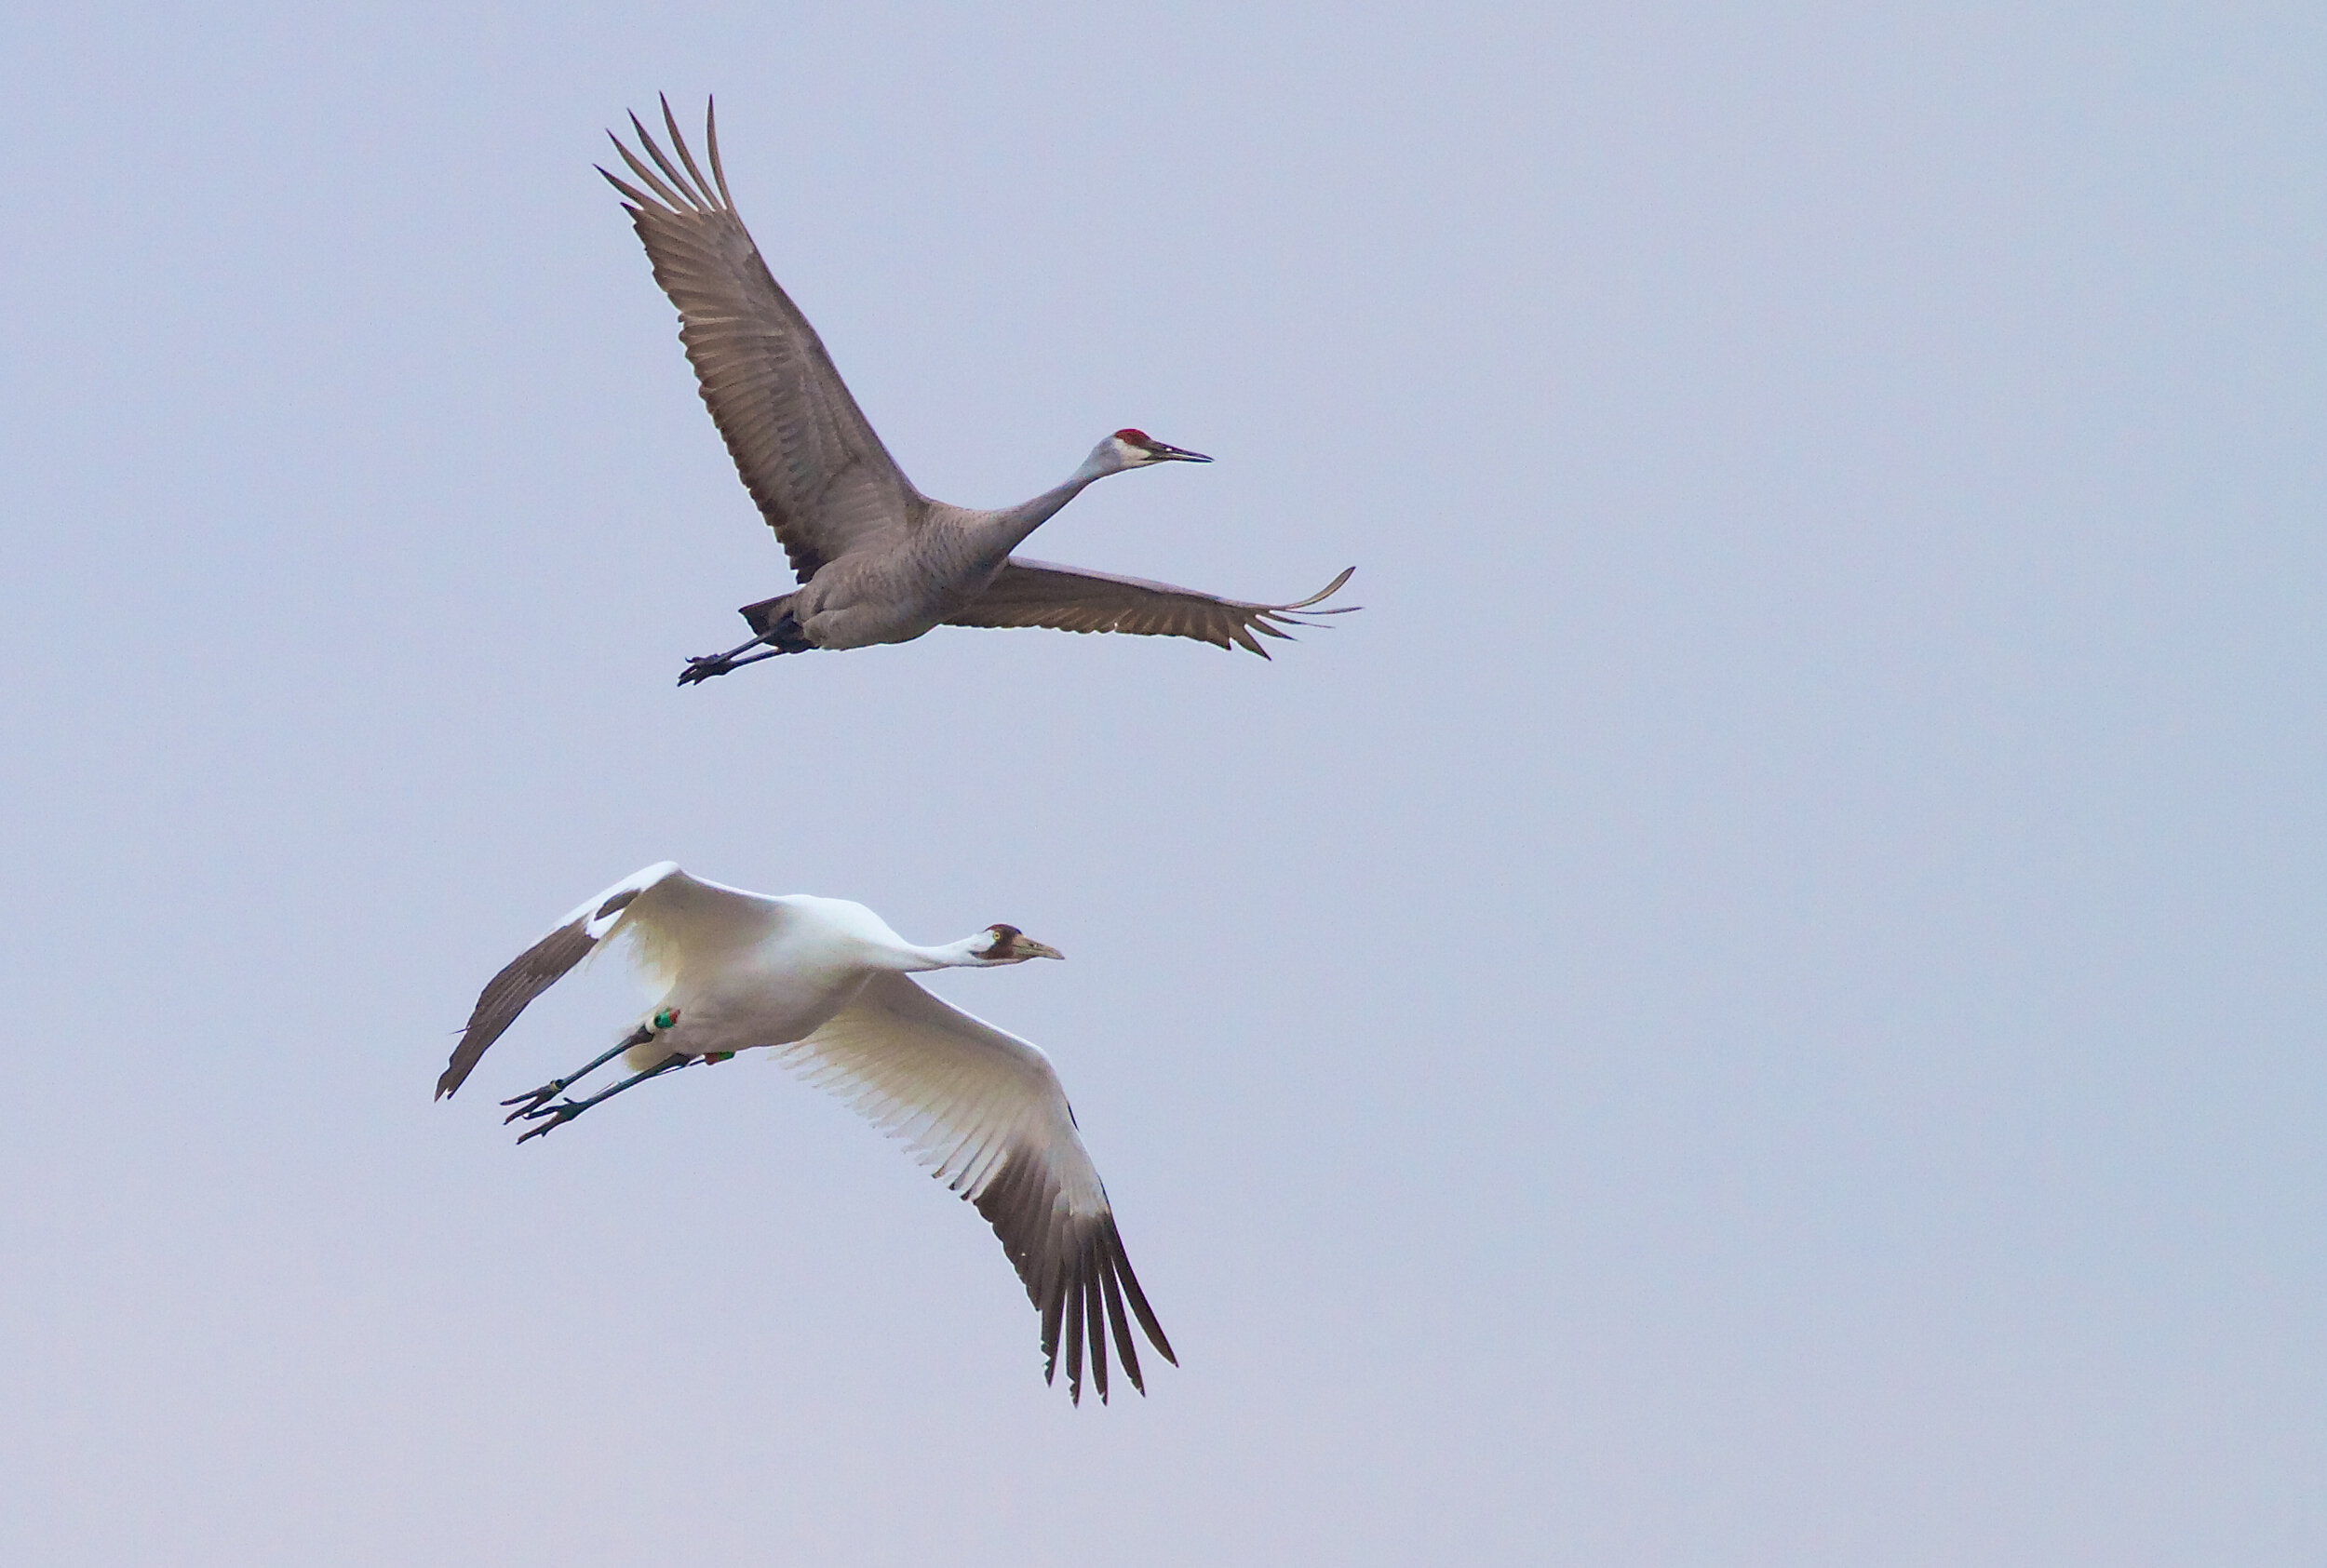 A sandhill and whooping crane fly overhead. Photo by Arlene Koziol, taken in 2014